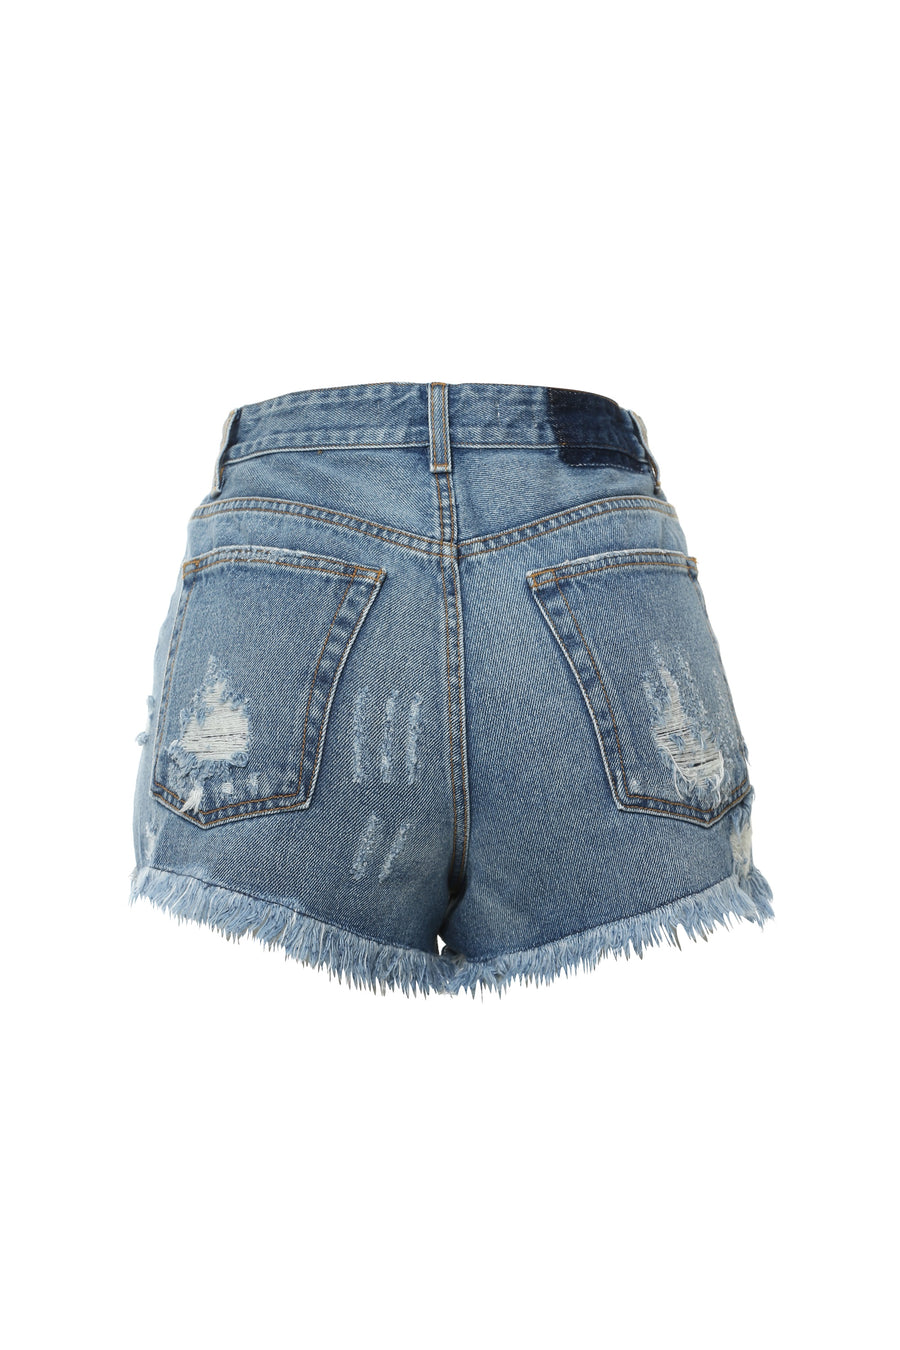 SHORTS SUMMER DENIM